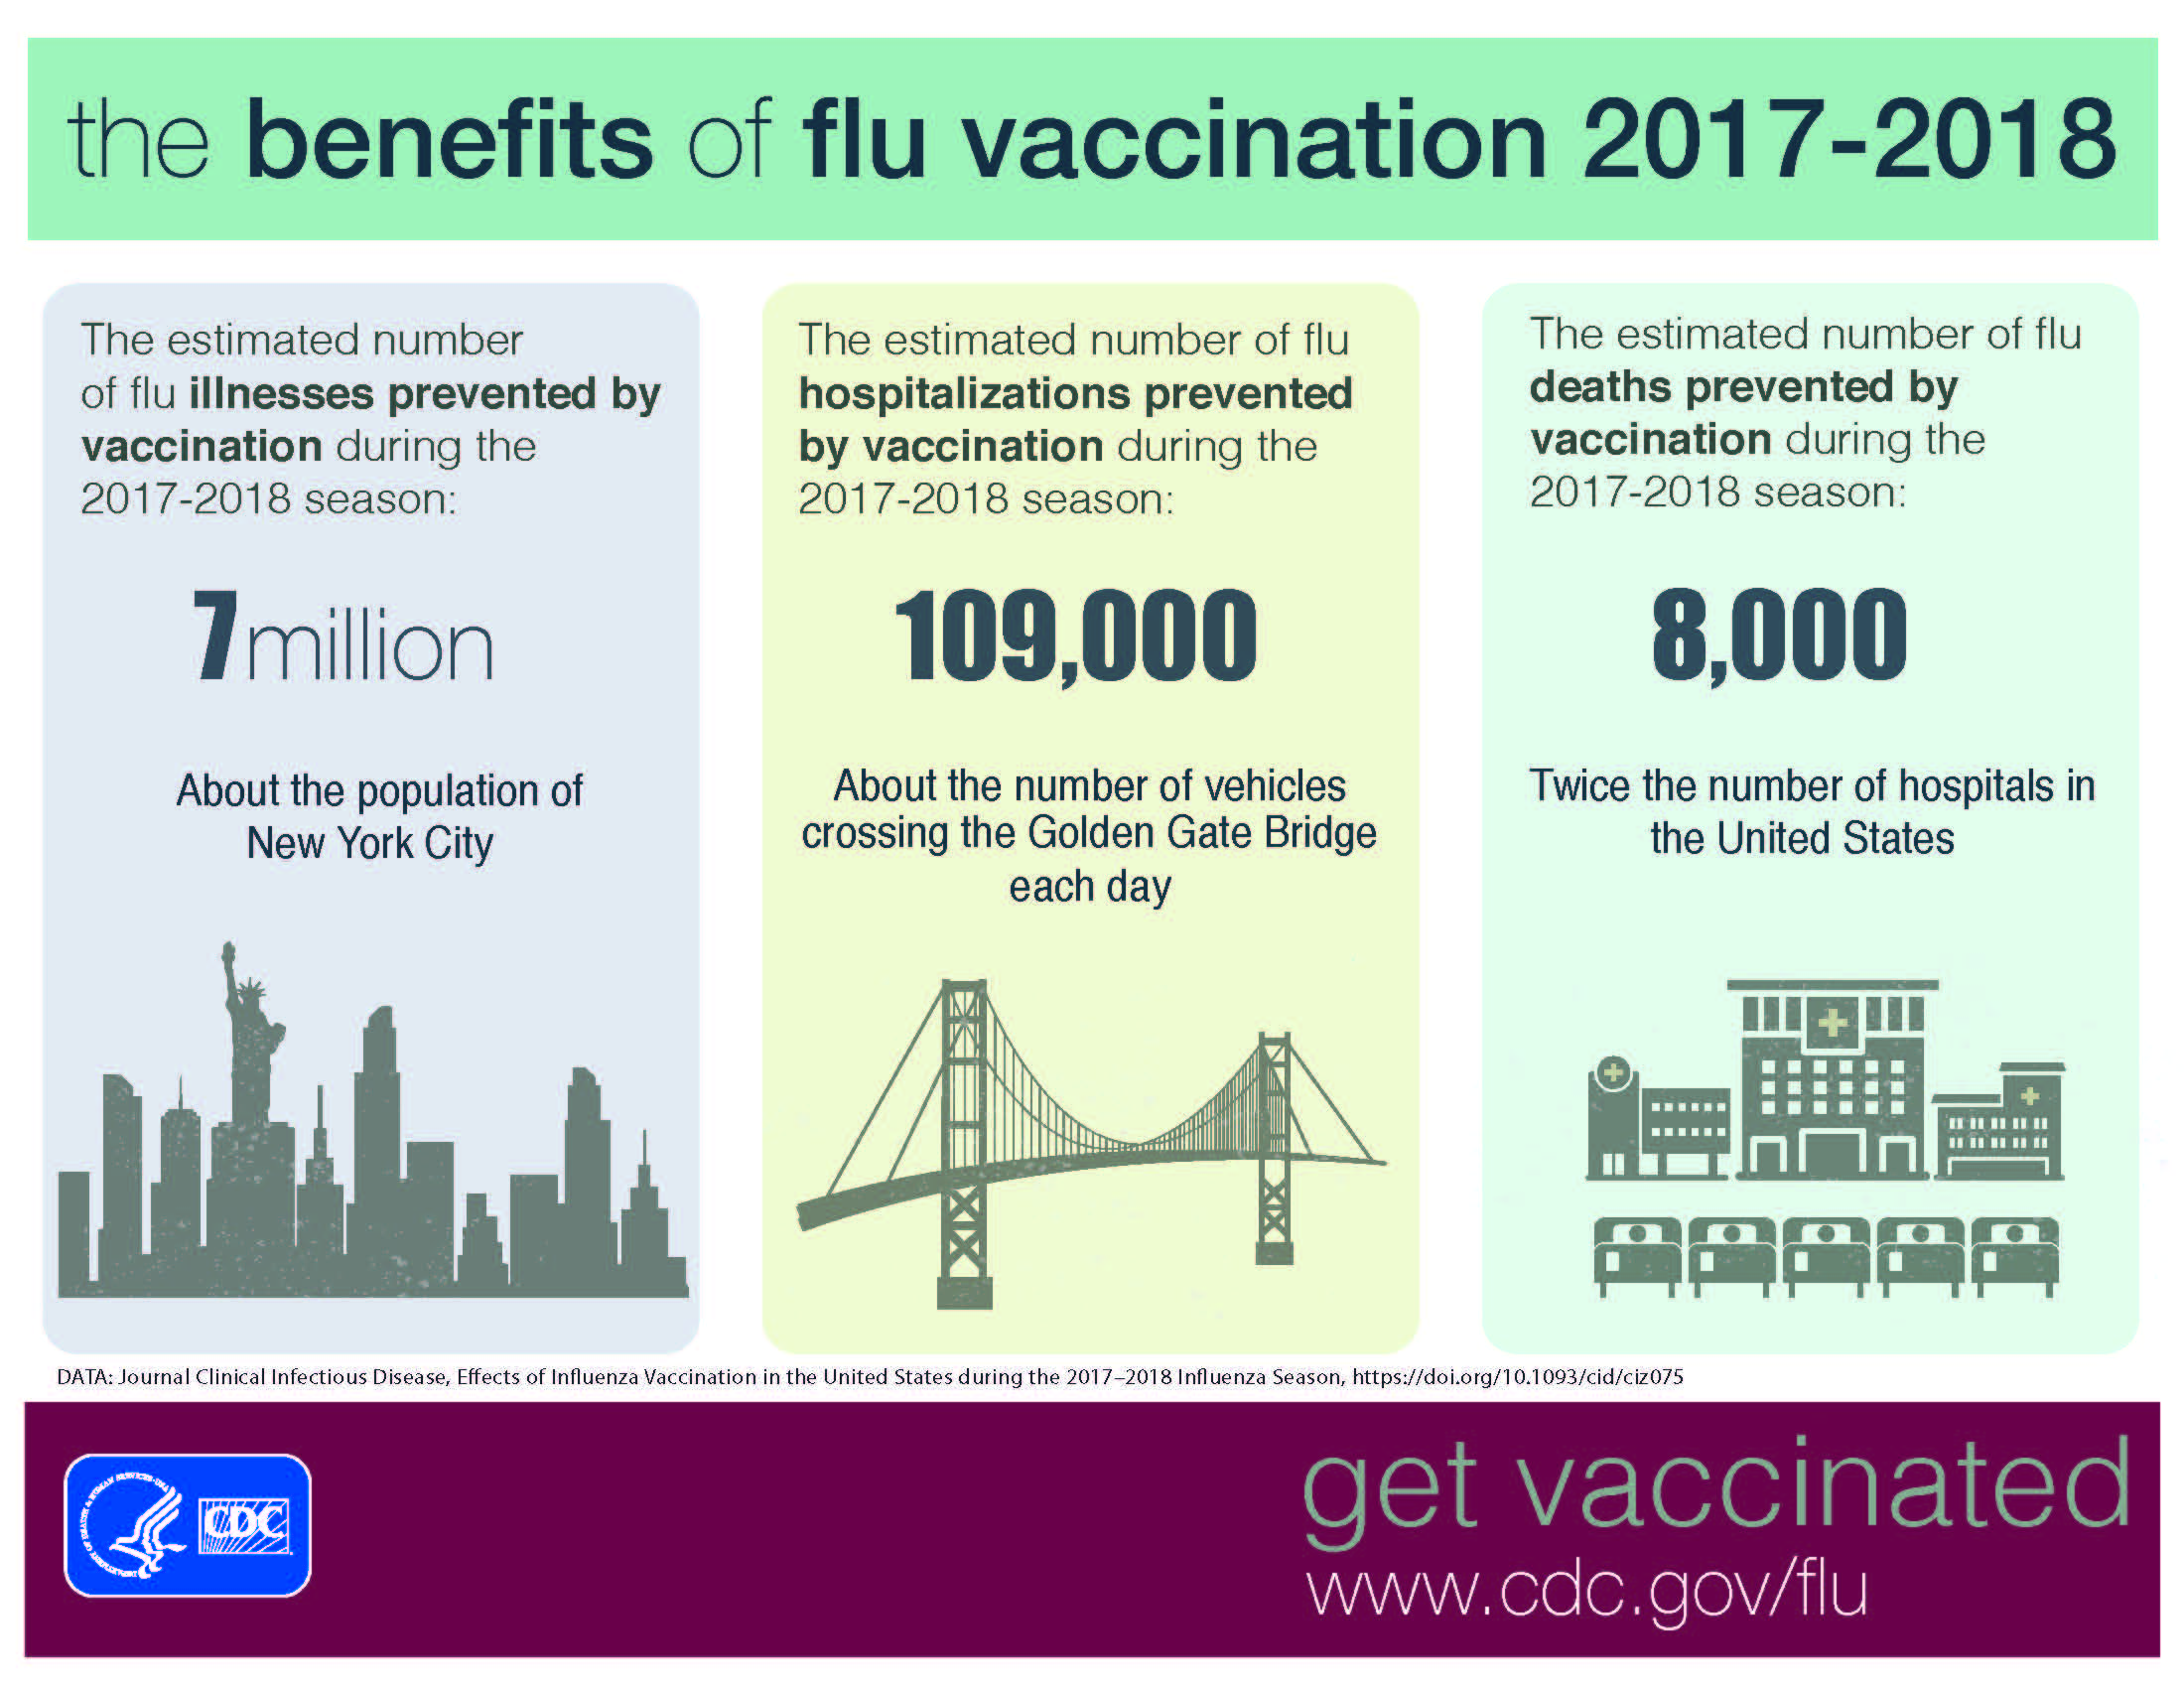 flu vaccination 2016 2017 infographic - HD 2200×1700